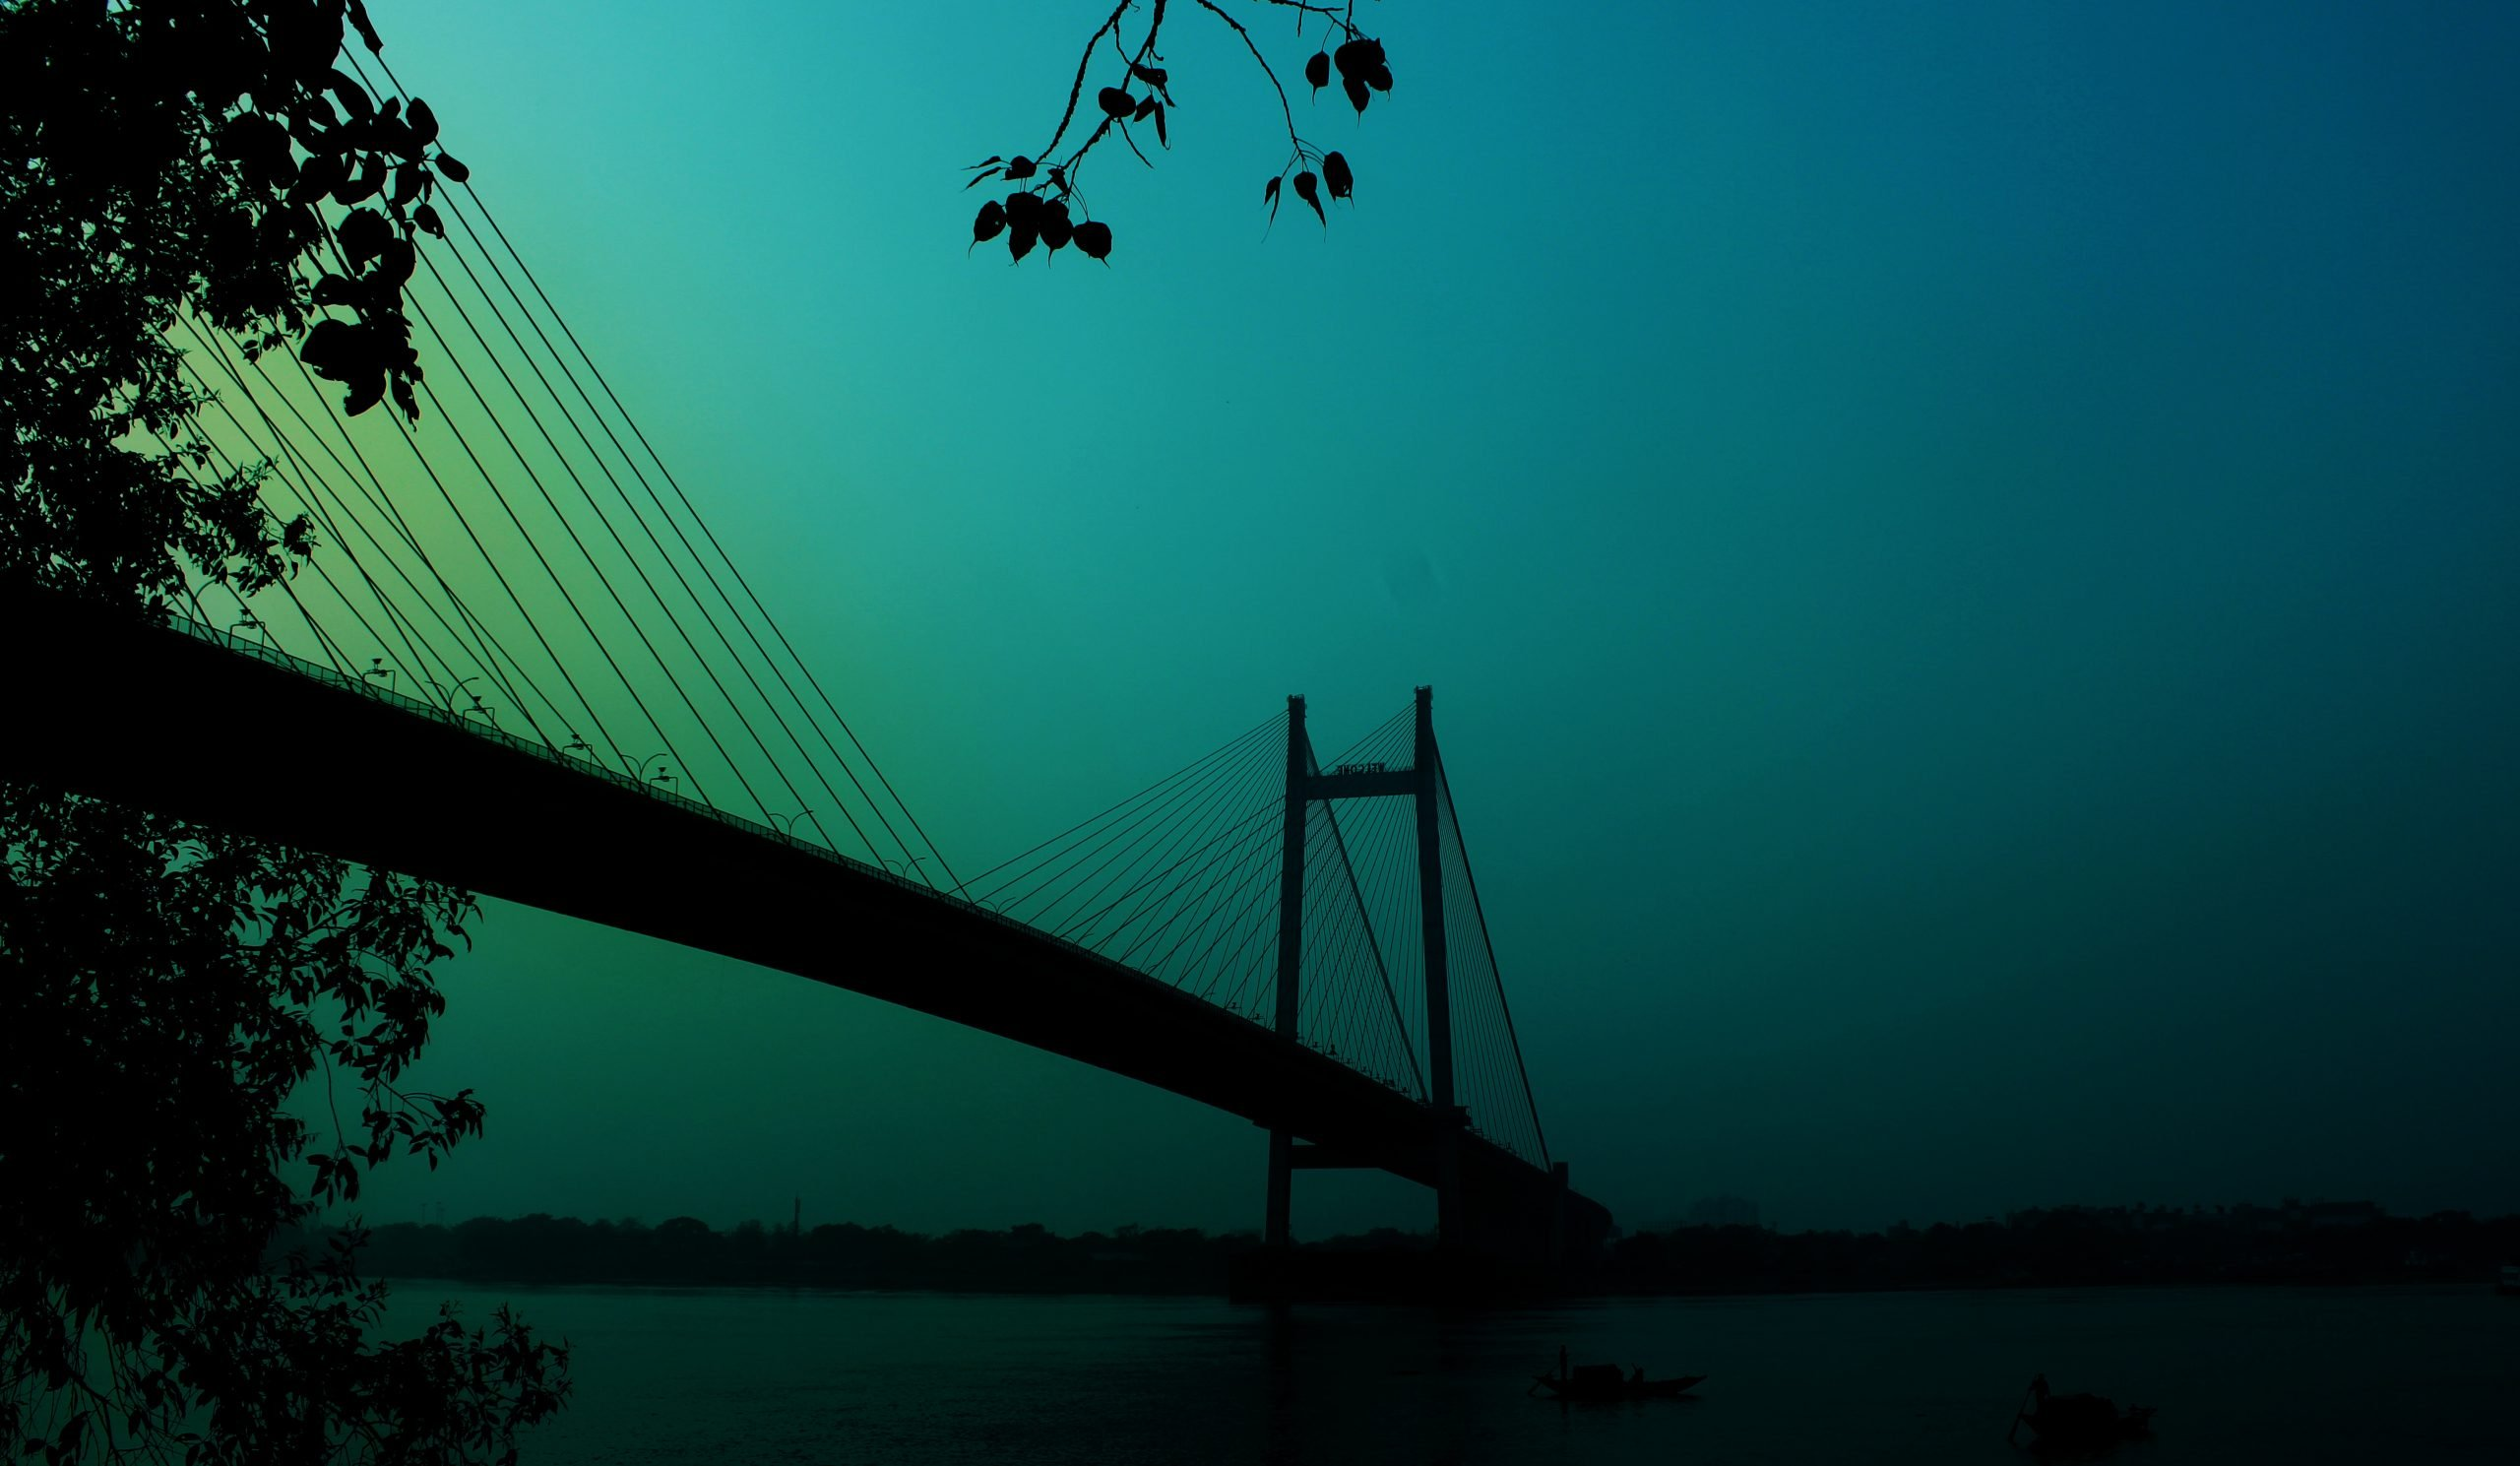 Evening view of Bridge